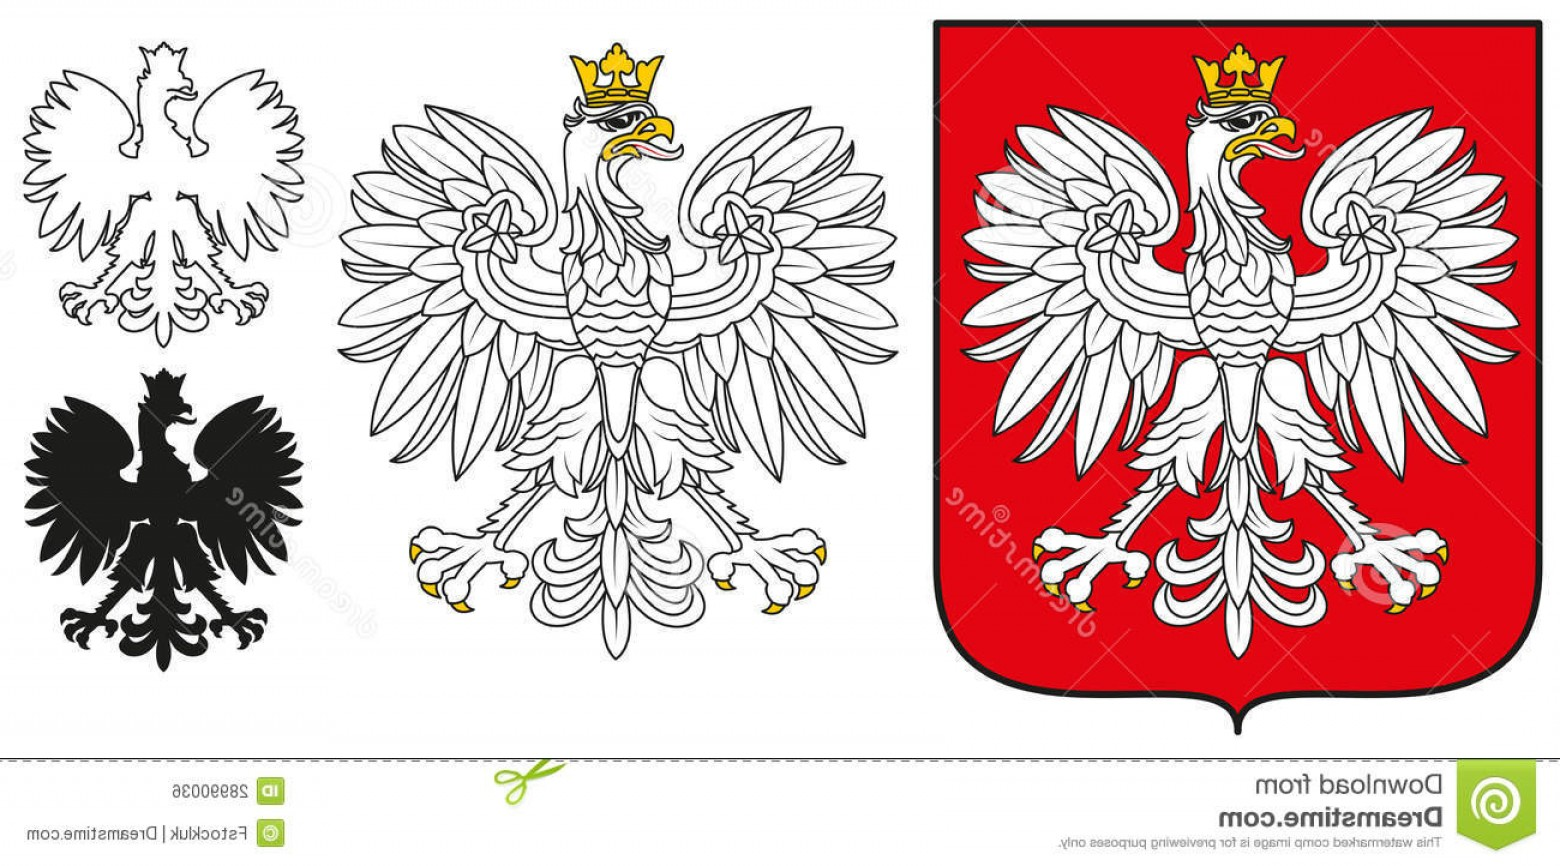 1560x866 Royalty Free Stock Image Poland Emblem White Eagle Shield